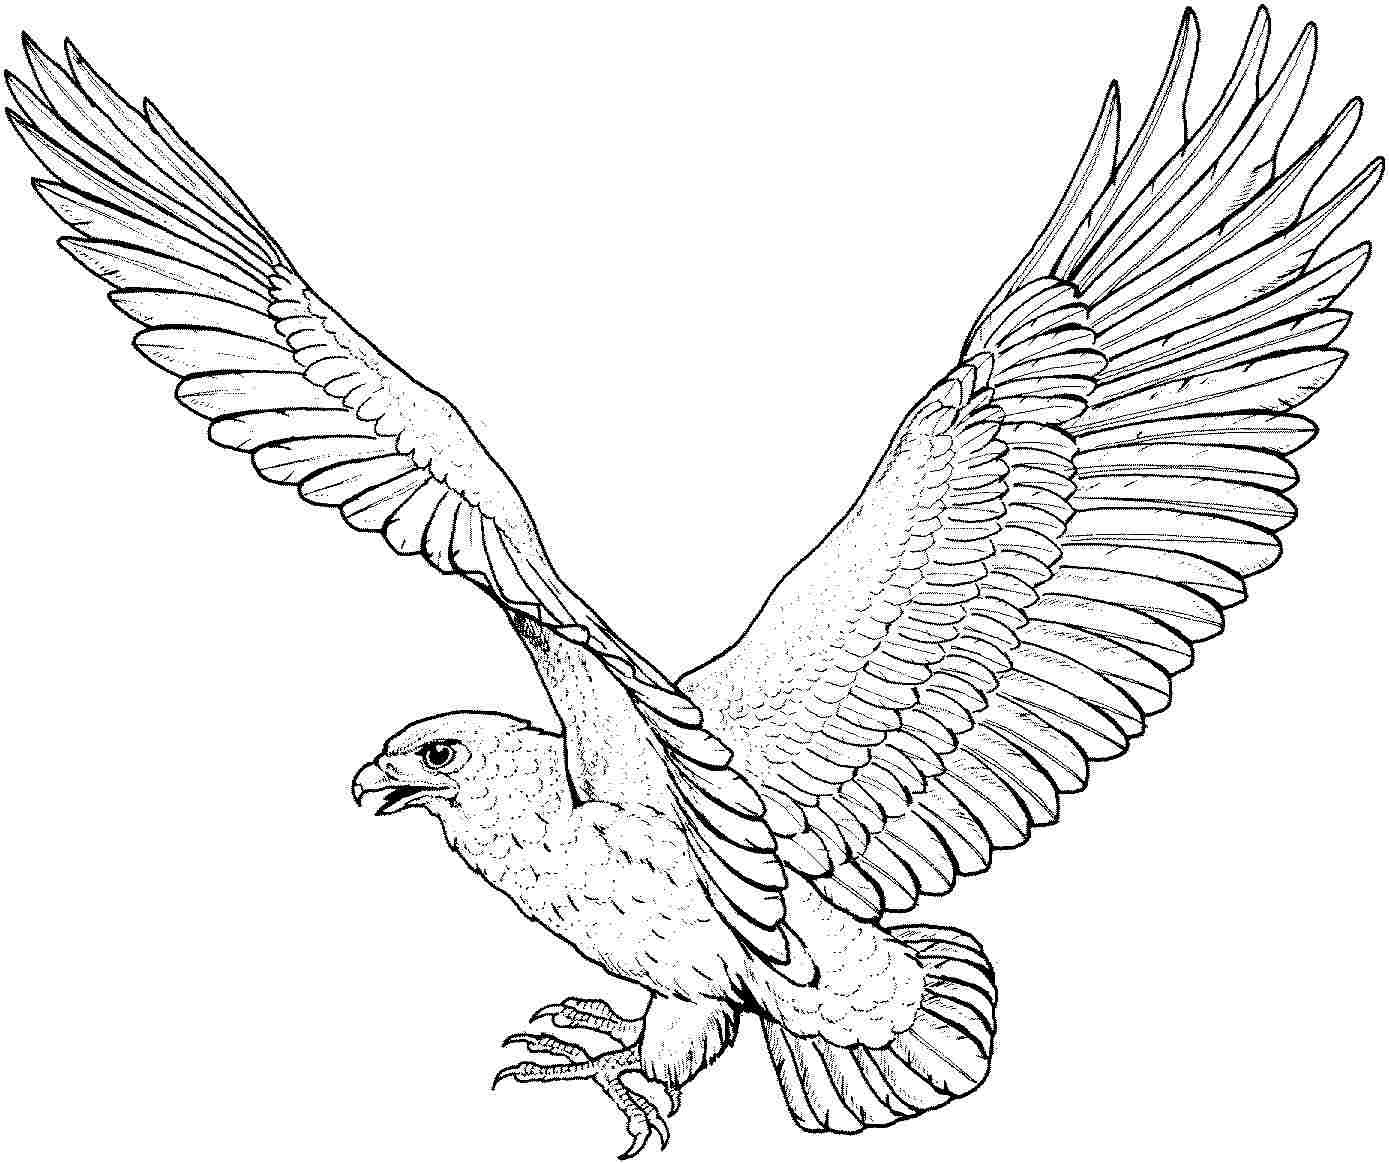 free printable eagle coloring pages free printable eagle coloring pages for kids coloring printable free eagle pages